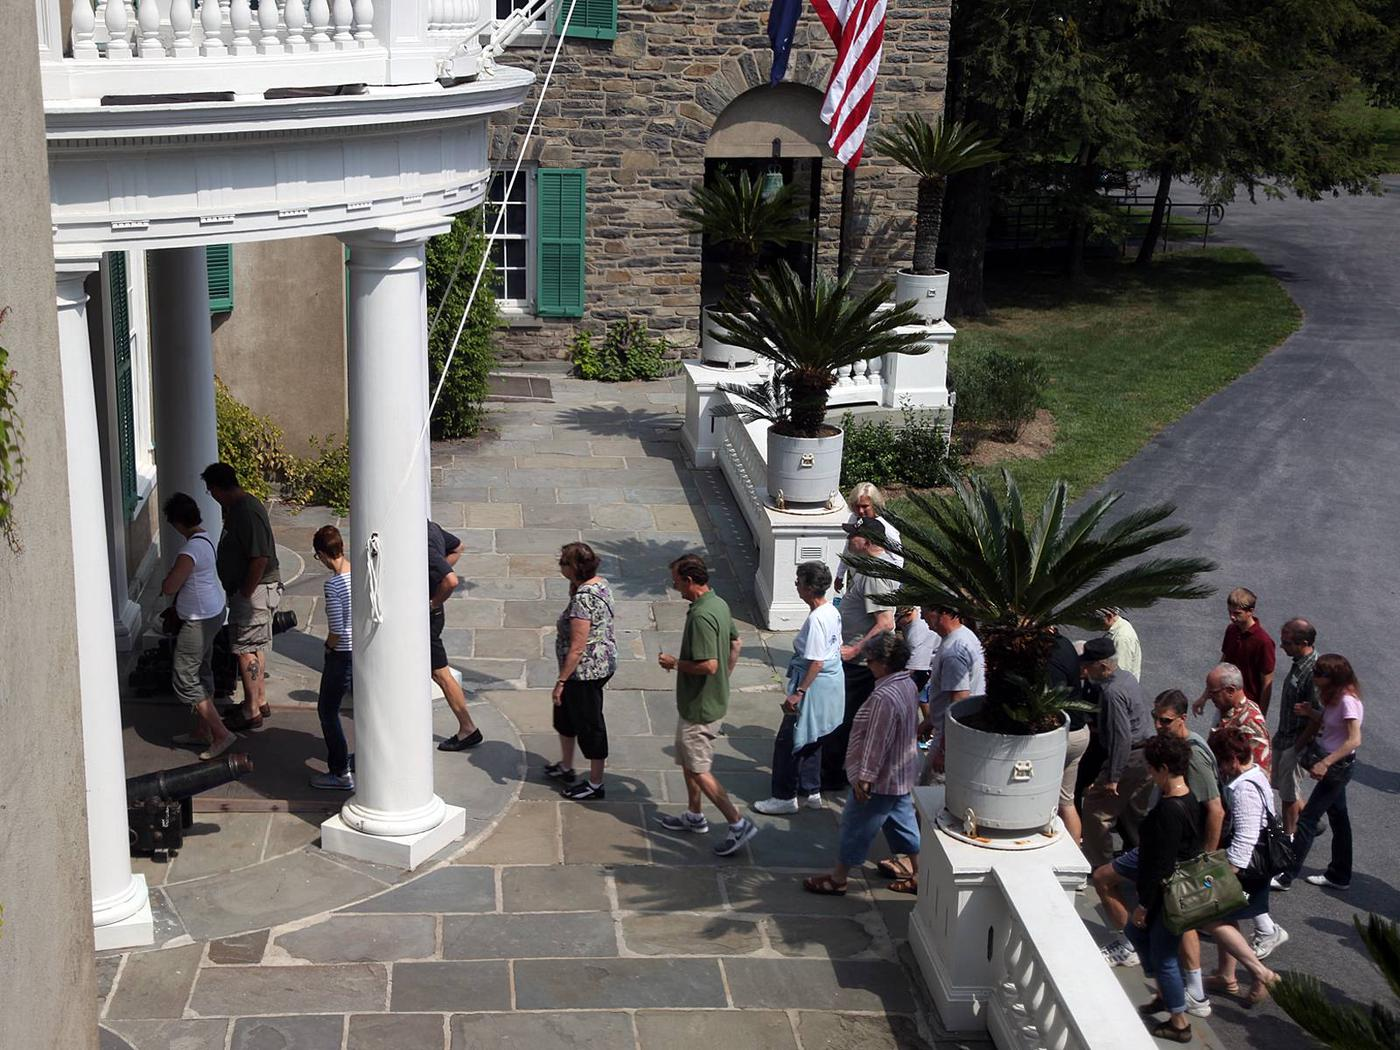 Group tour into the Home of FDR